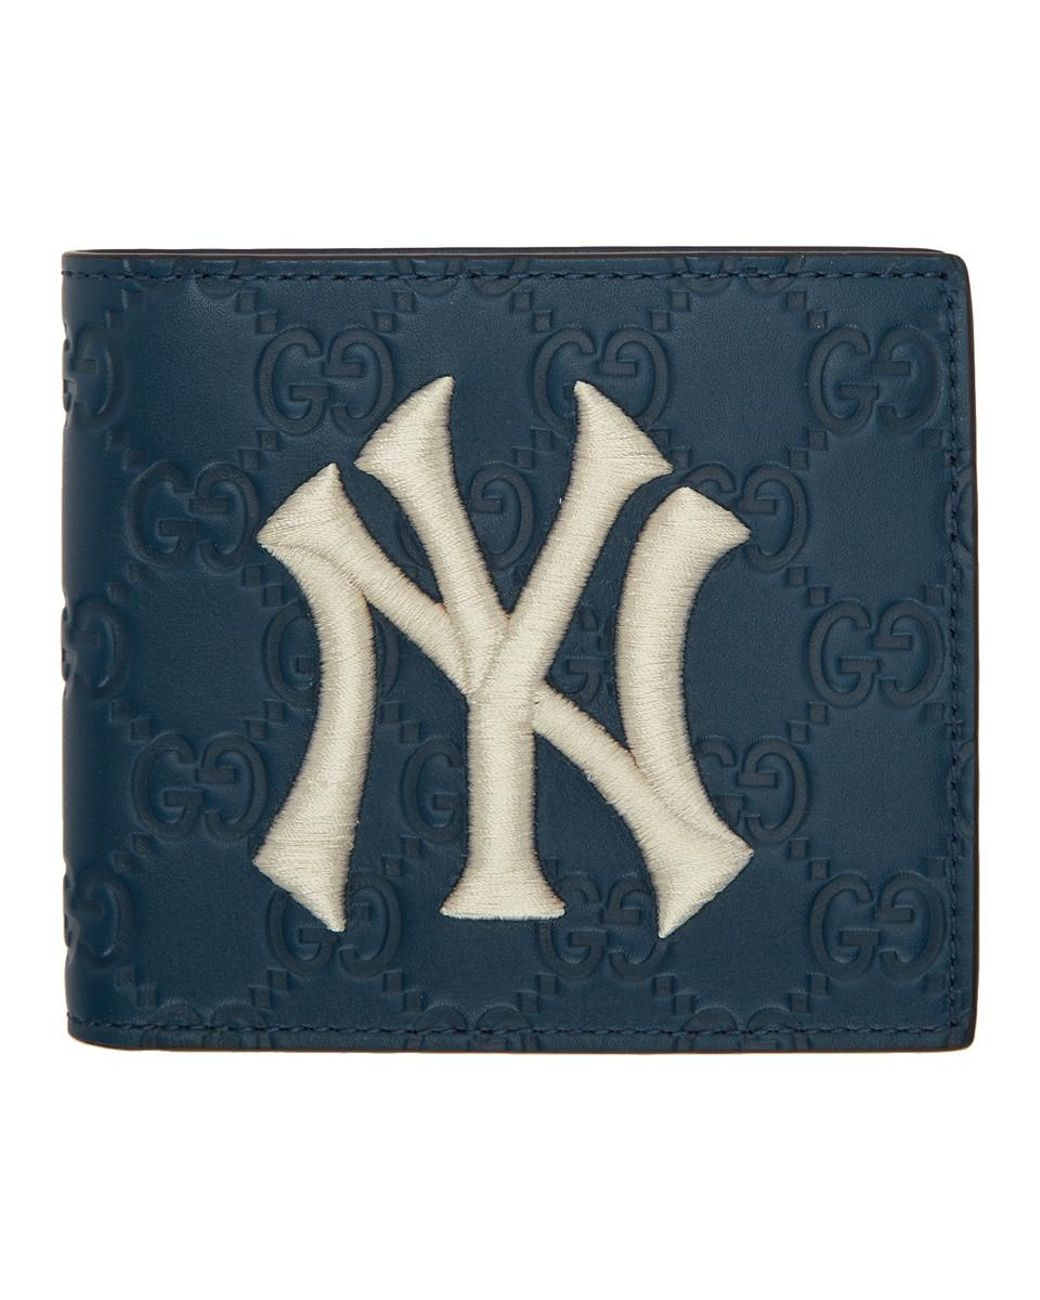 2d70bf109940 Gucci Navy Ny Yankees Edition GG Wallet in Blue for Men - Save 9% - Lyst